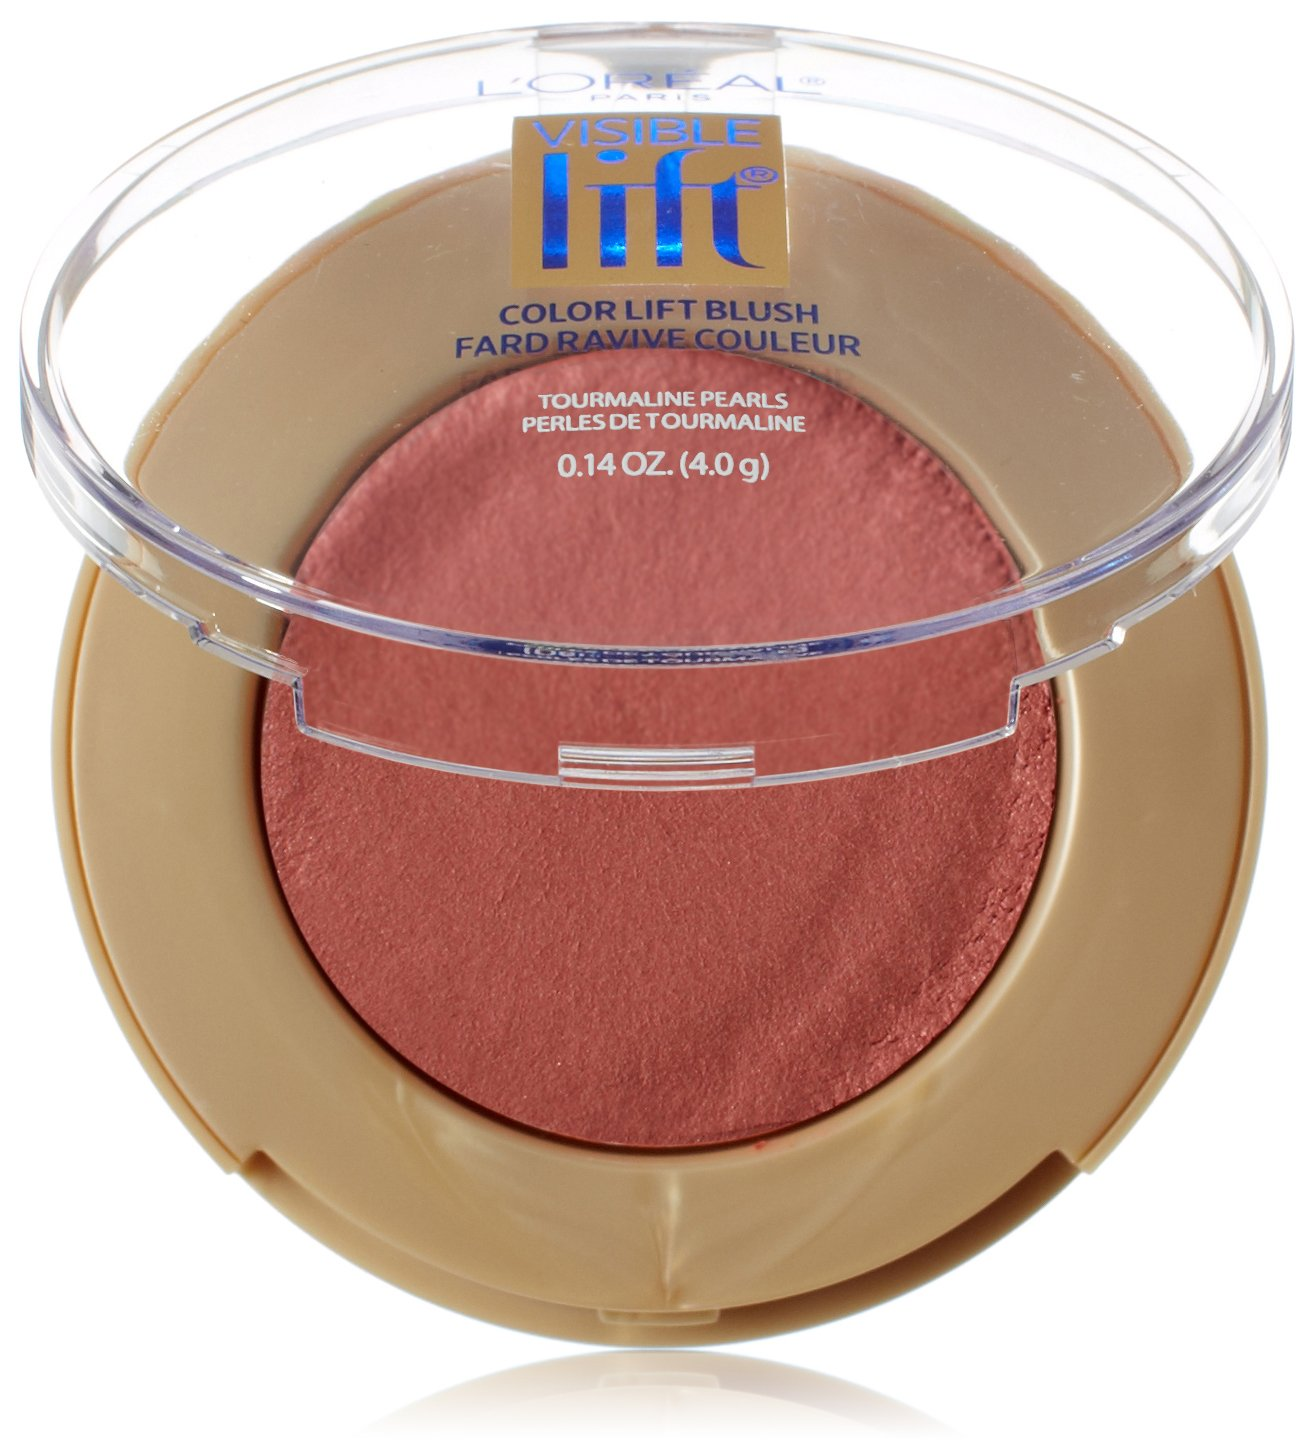 L'Oréal Paris Visible Lift Color Lift Blush, Berry Lift, 0.14 oz. by L'Oreal Paris (Image #1)